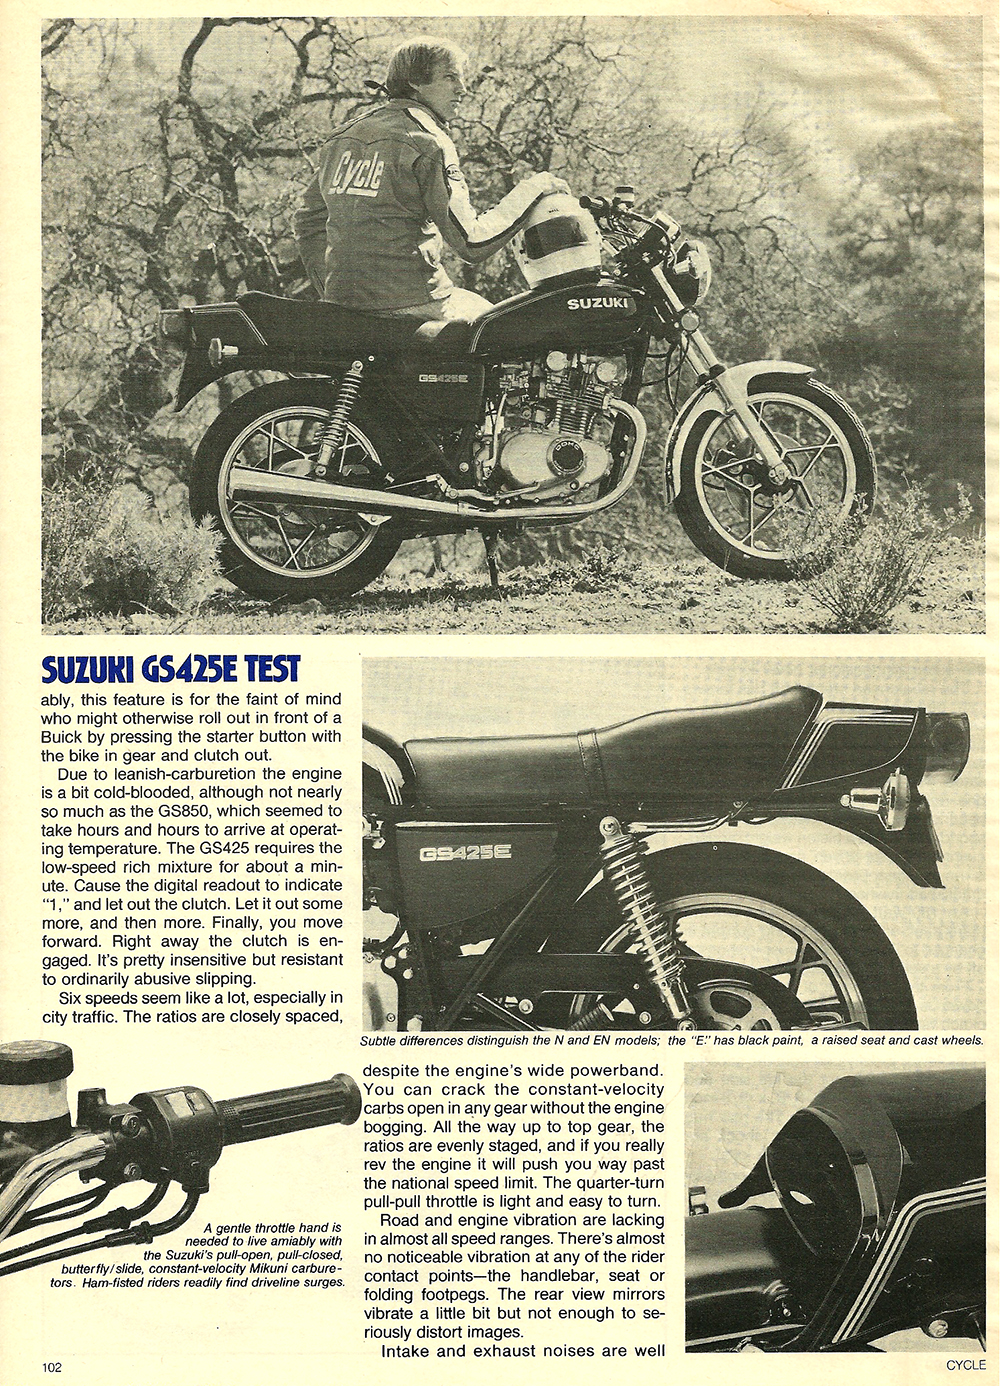 1979 Suzuki GS425E road test 05.jpg